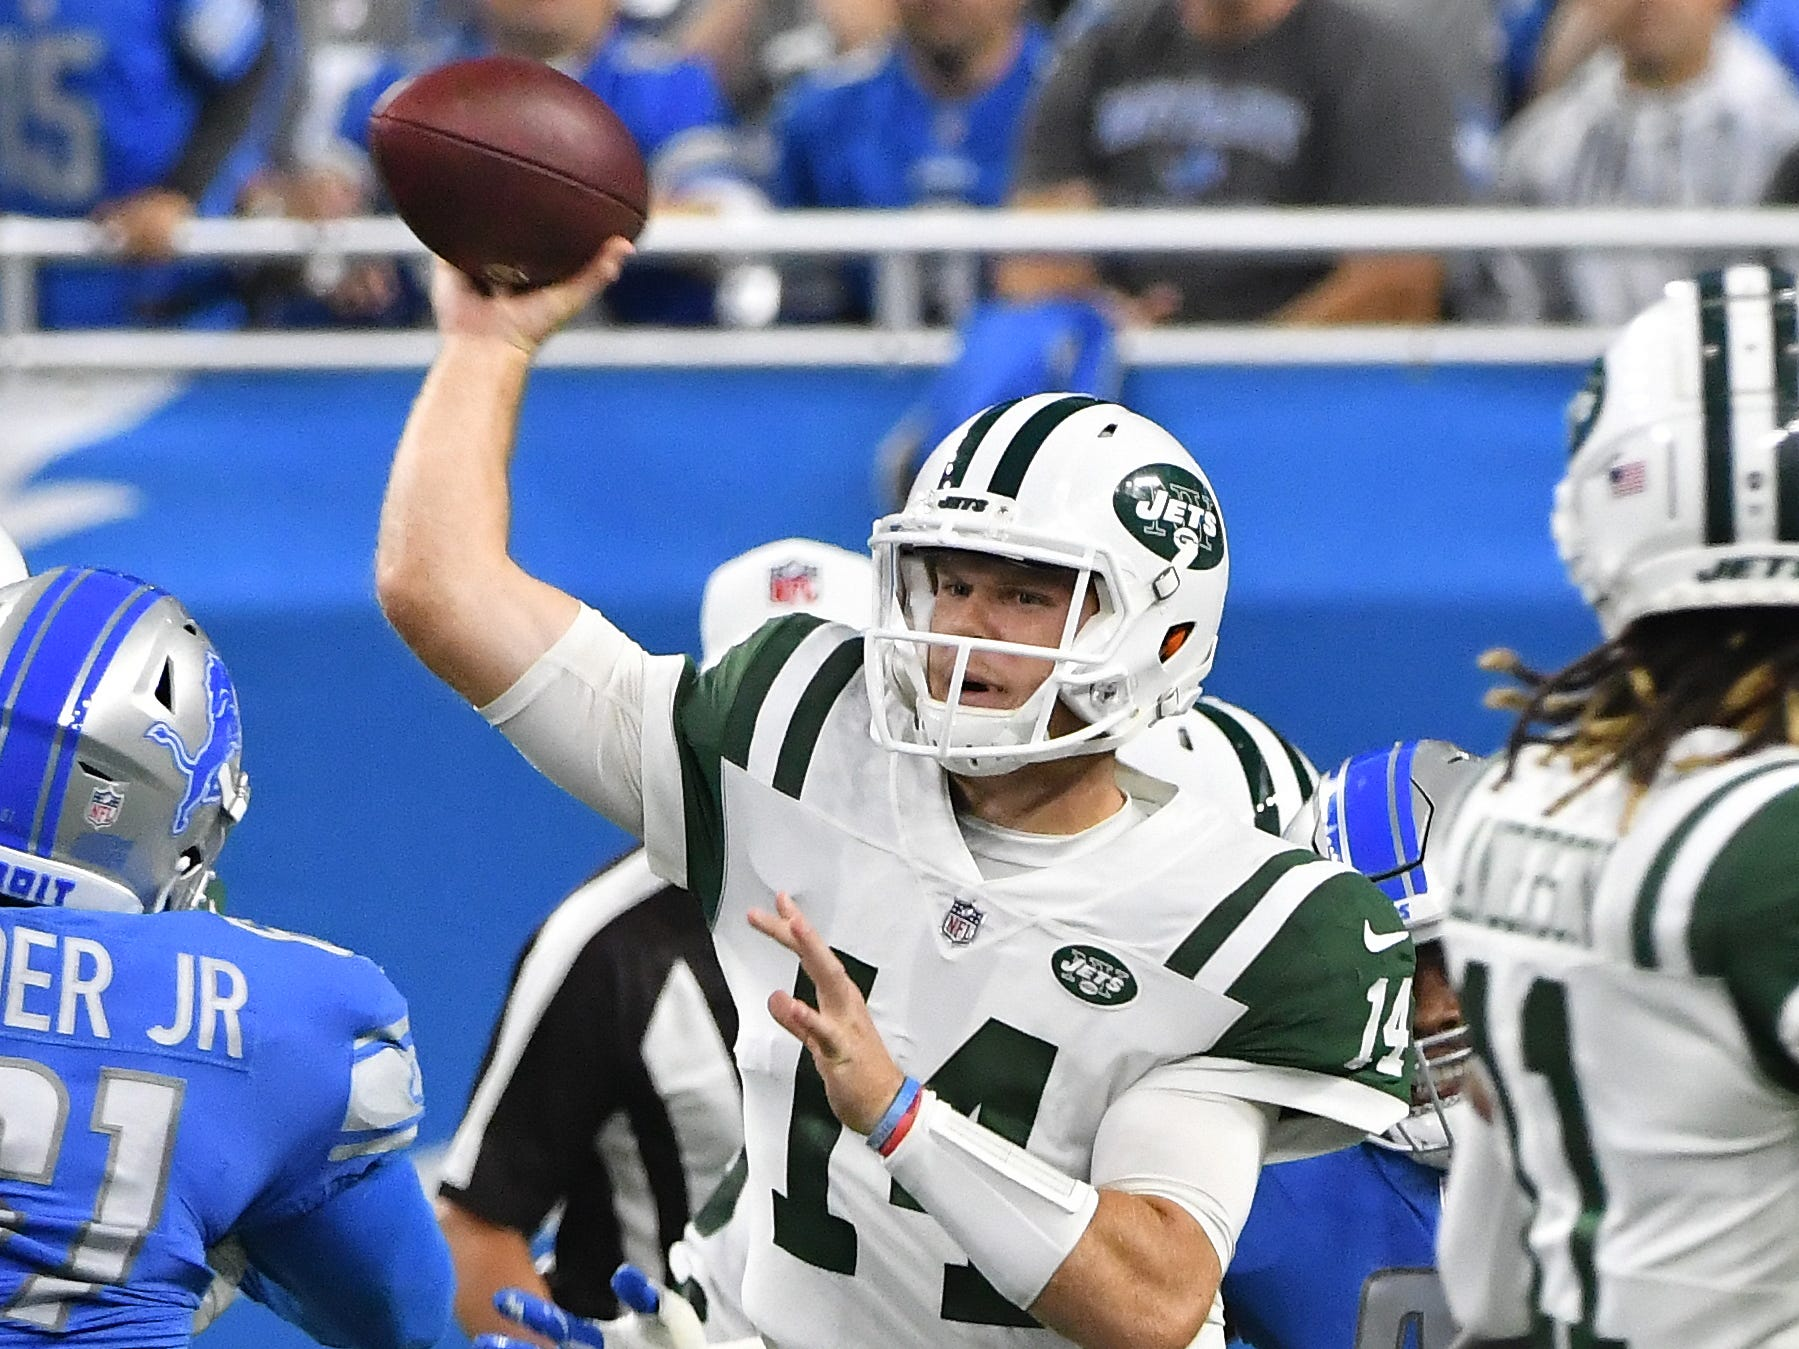 Jets rookie quarterback Sam Darnold throws in the first quarter.